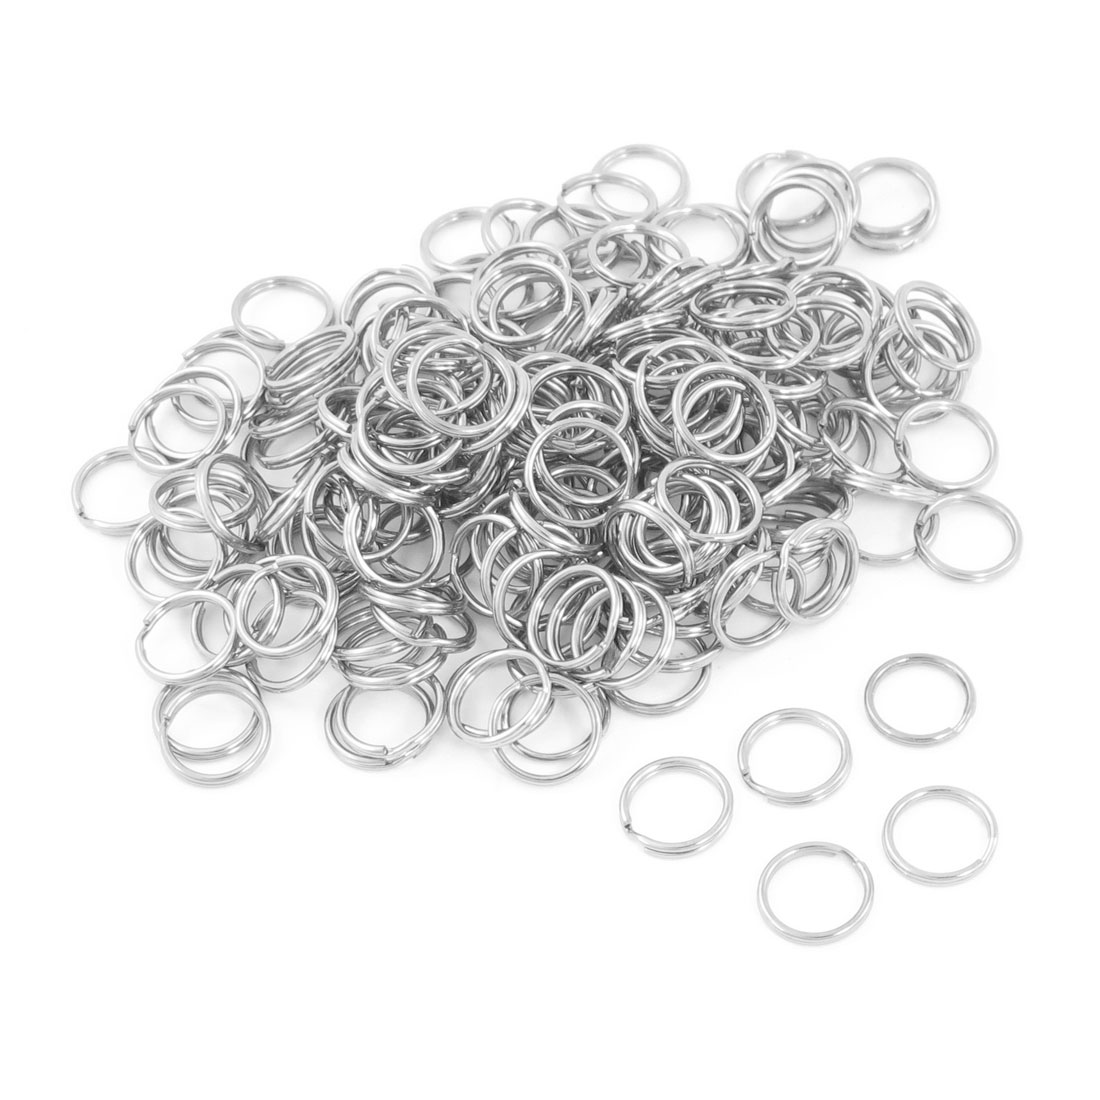 200 Pcs Silver Tone Glossy Metal Split Ring Keyring Holder Hook Chain 15mm